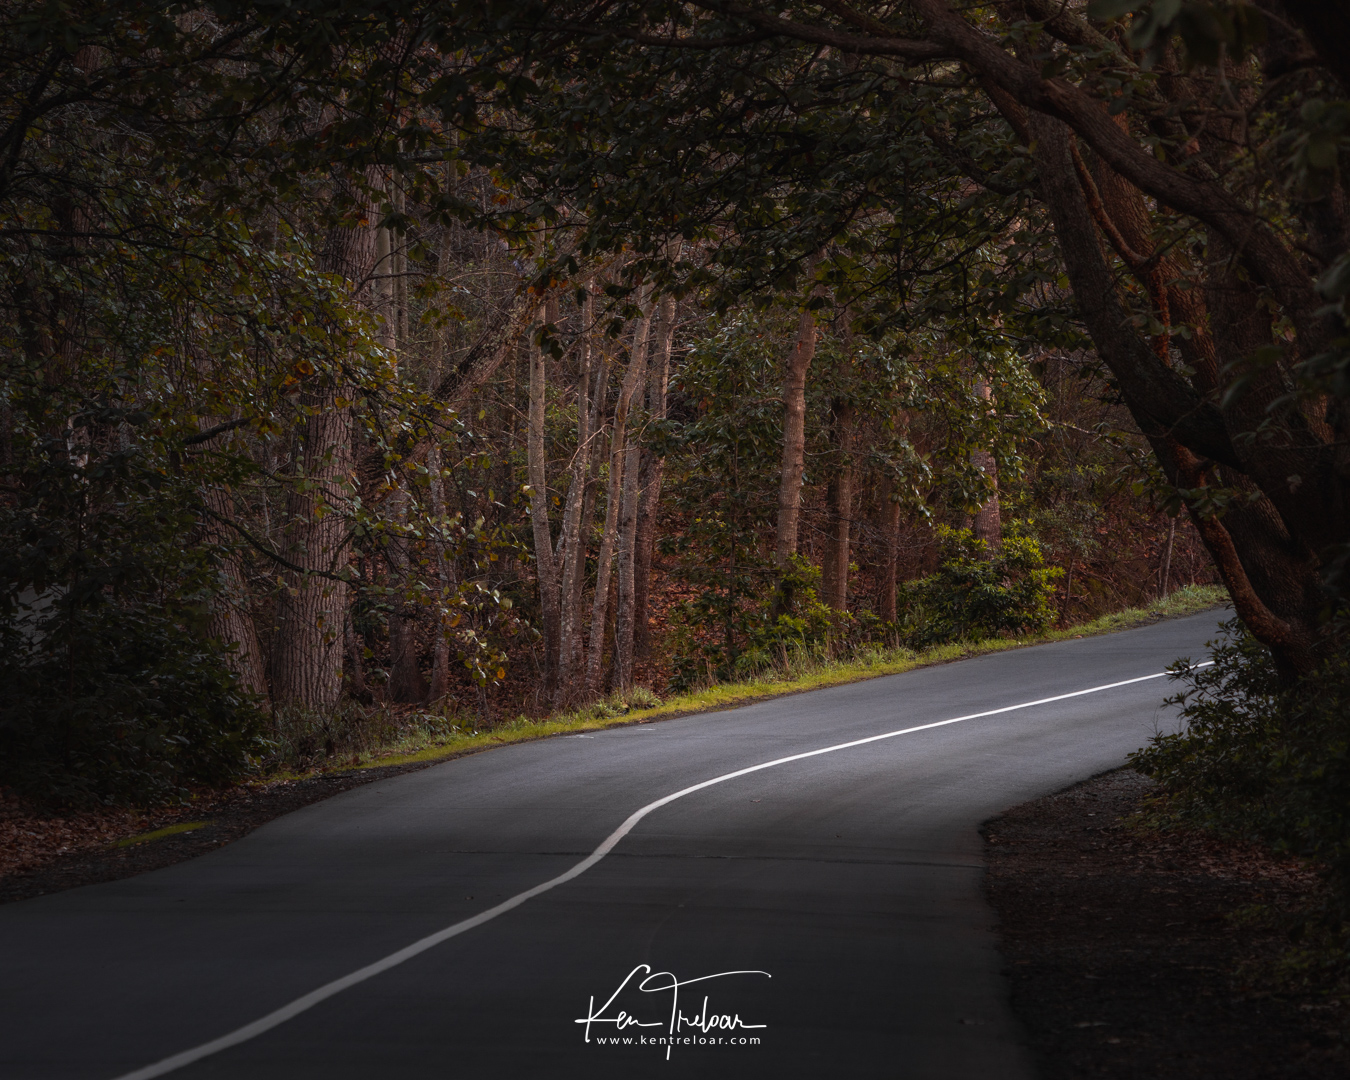 Image by Ken Treloar Photography - 2018 - All Rights Reserved (LR)-4.jpg